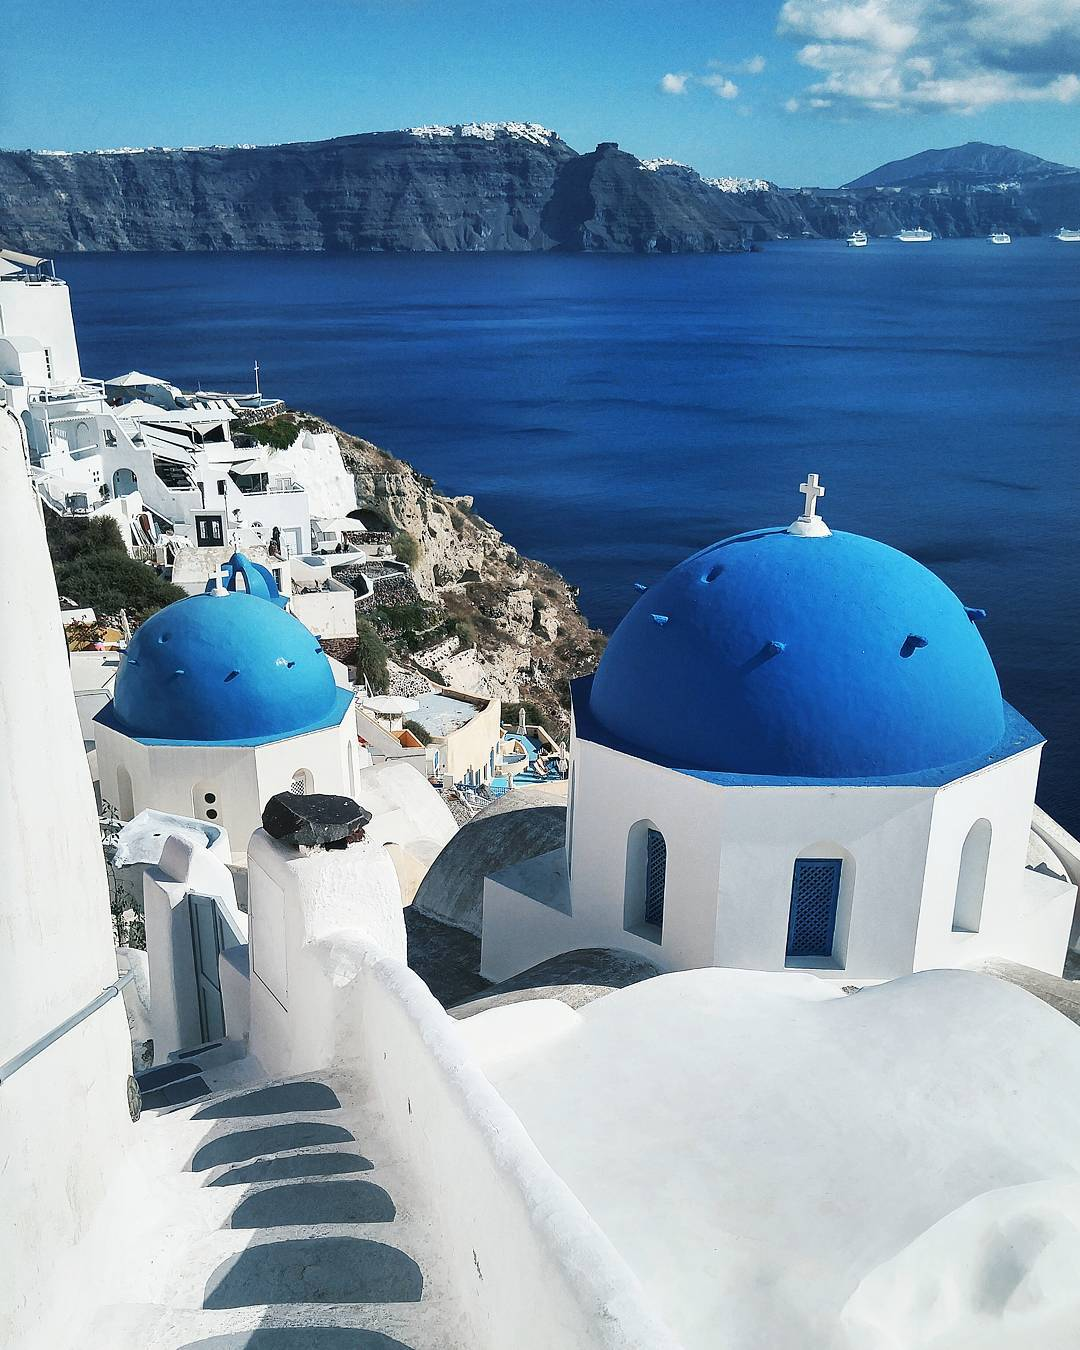 Sightseeing guide to Oia, Santorini, Greece